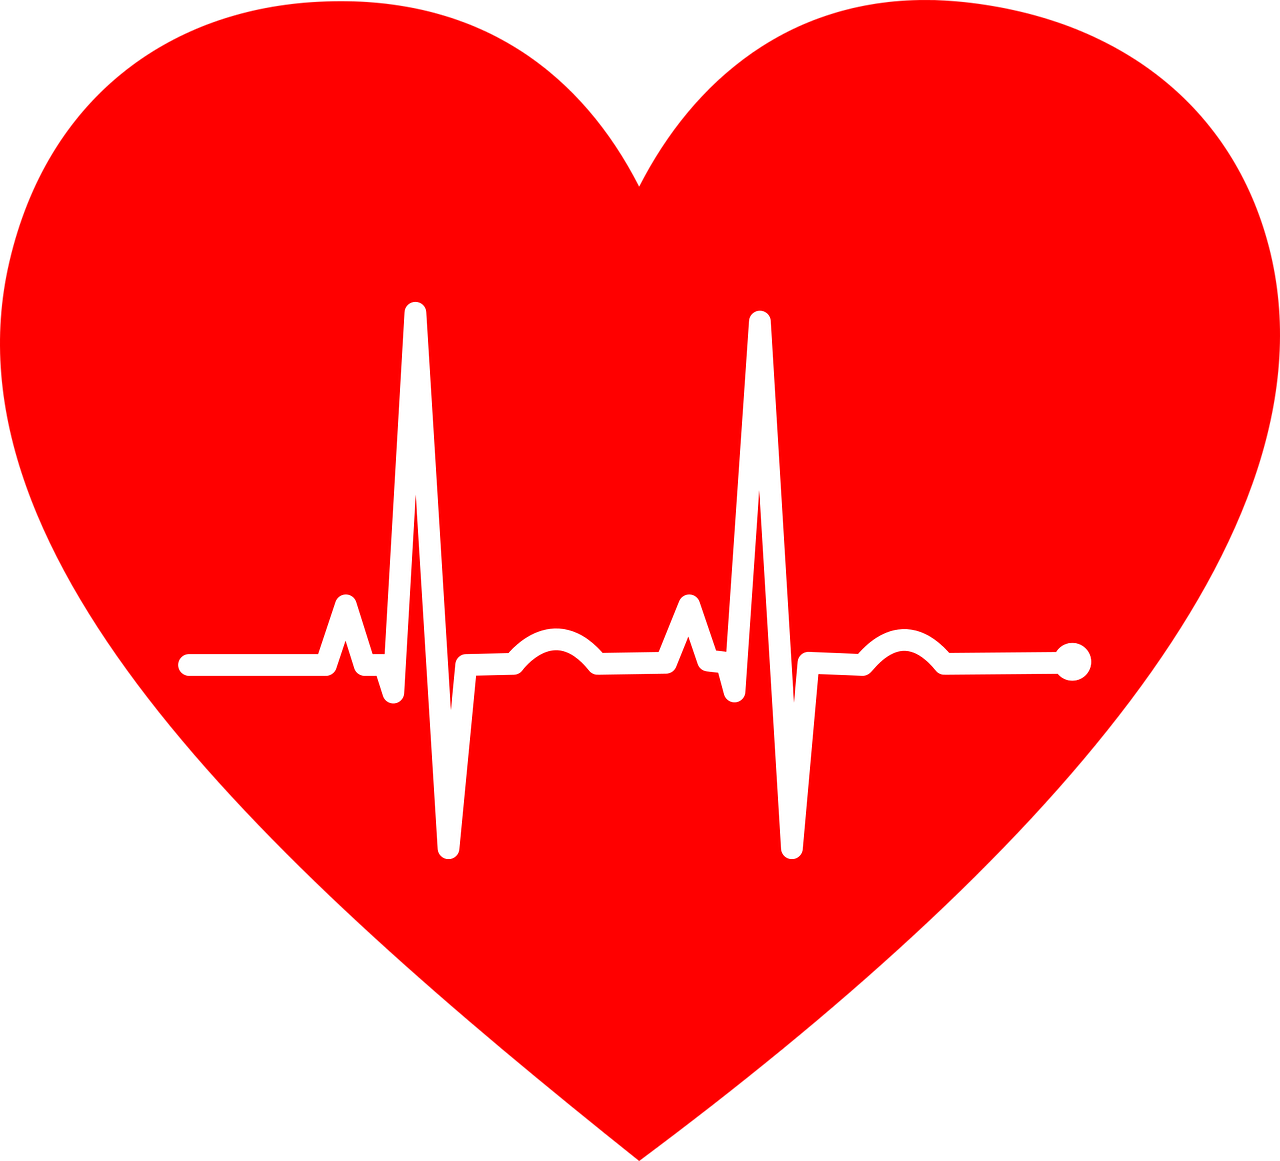 February clipart group heart. South lincolnshire ccg supports